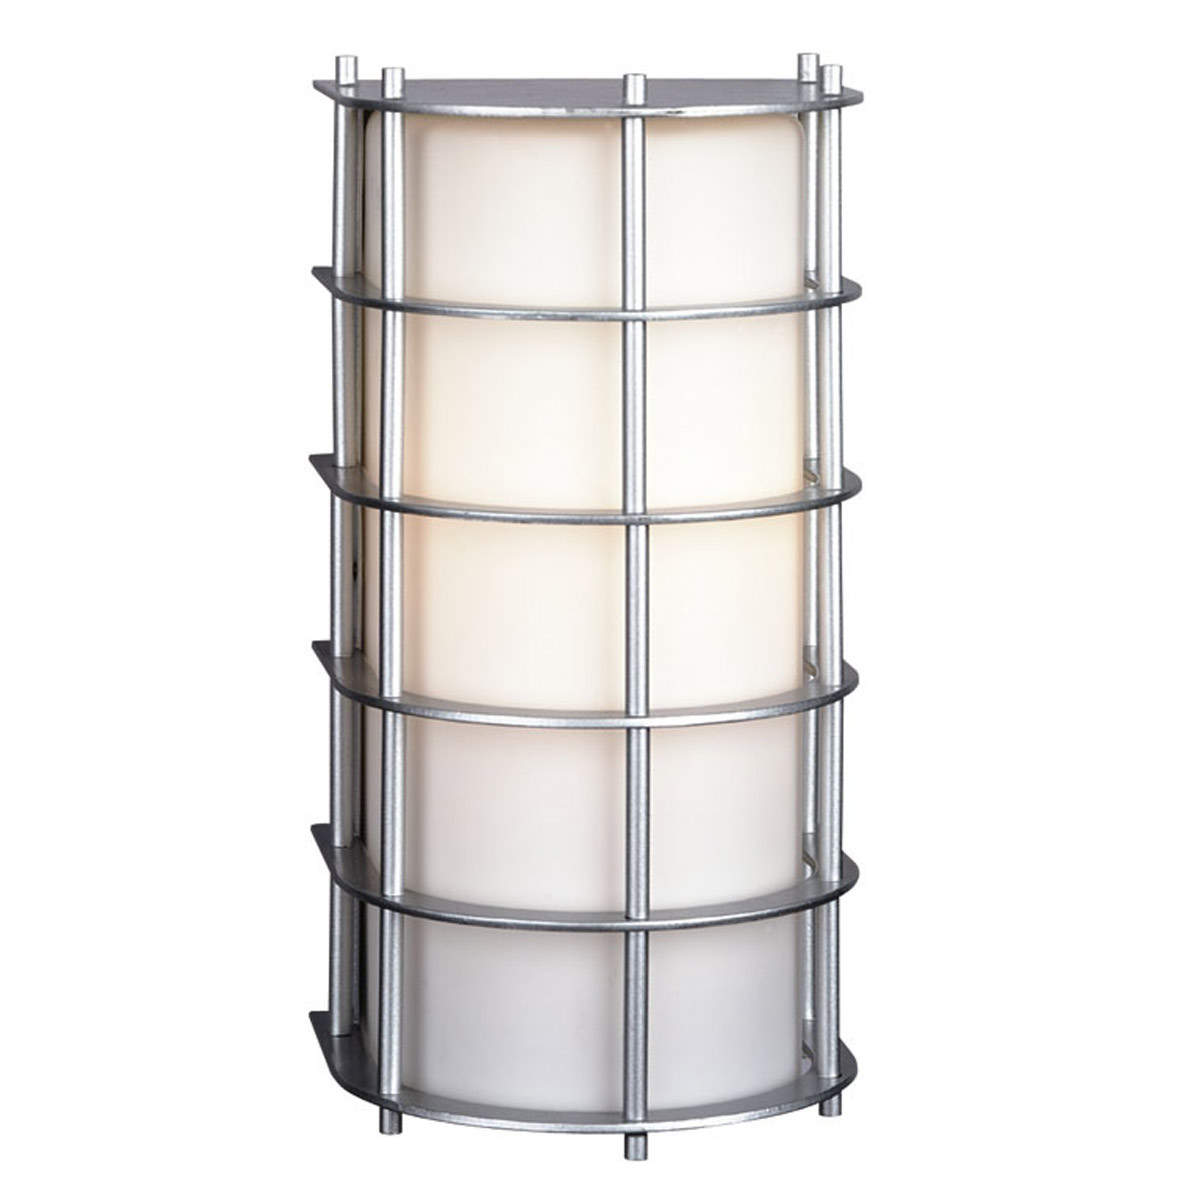 Hills Outdoor Wall Sconce by Forecast | F849141NV